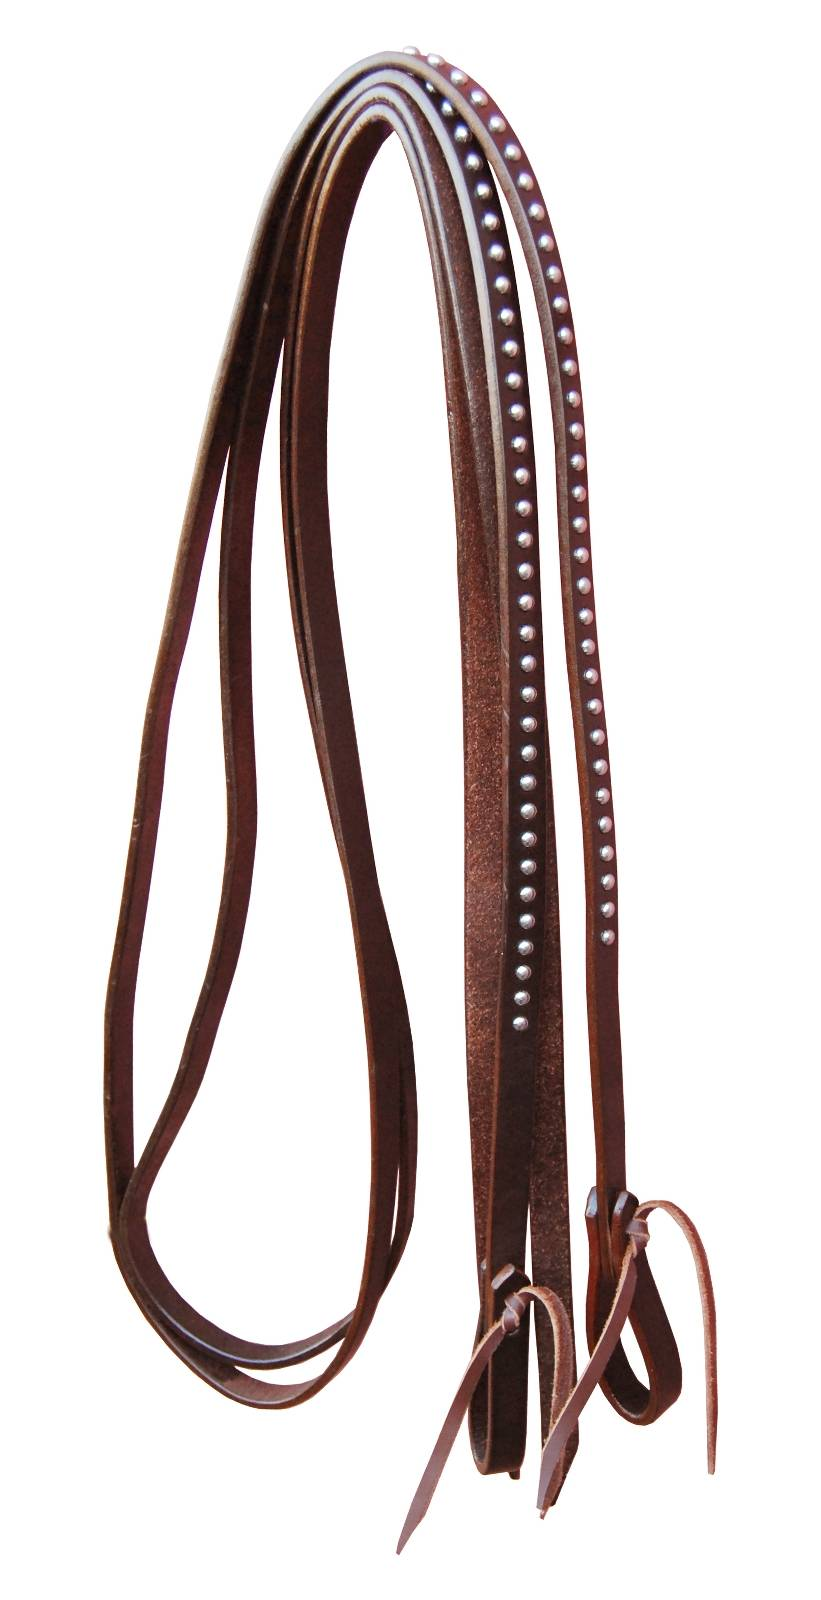 Turn-Two Copper Spot Split Reins